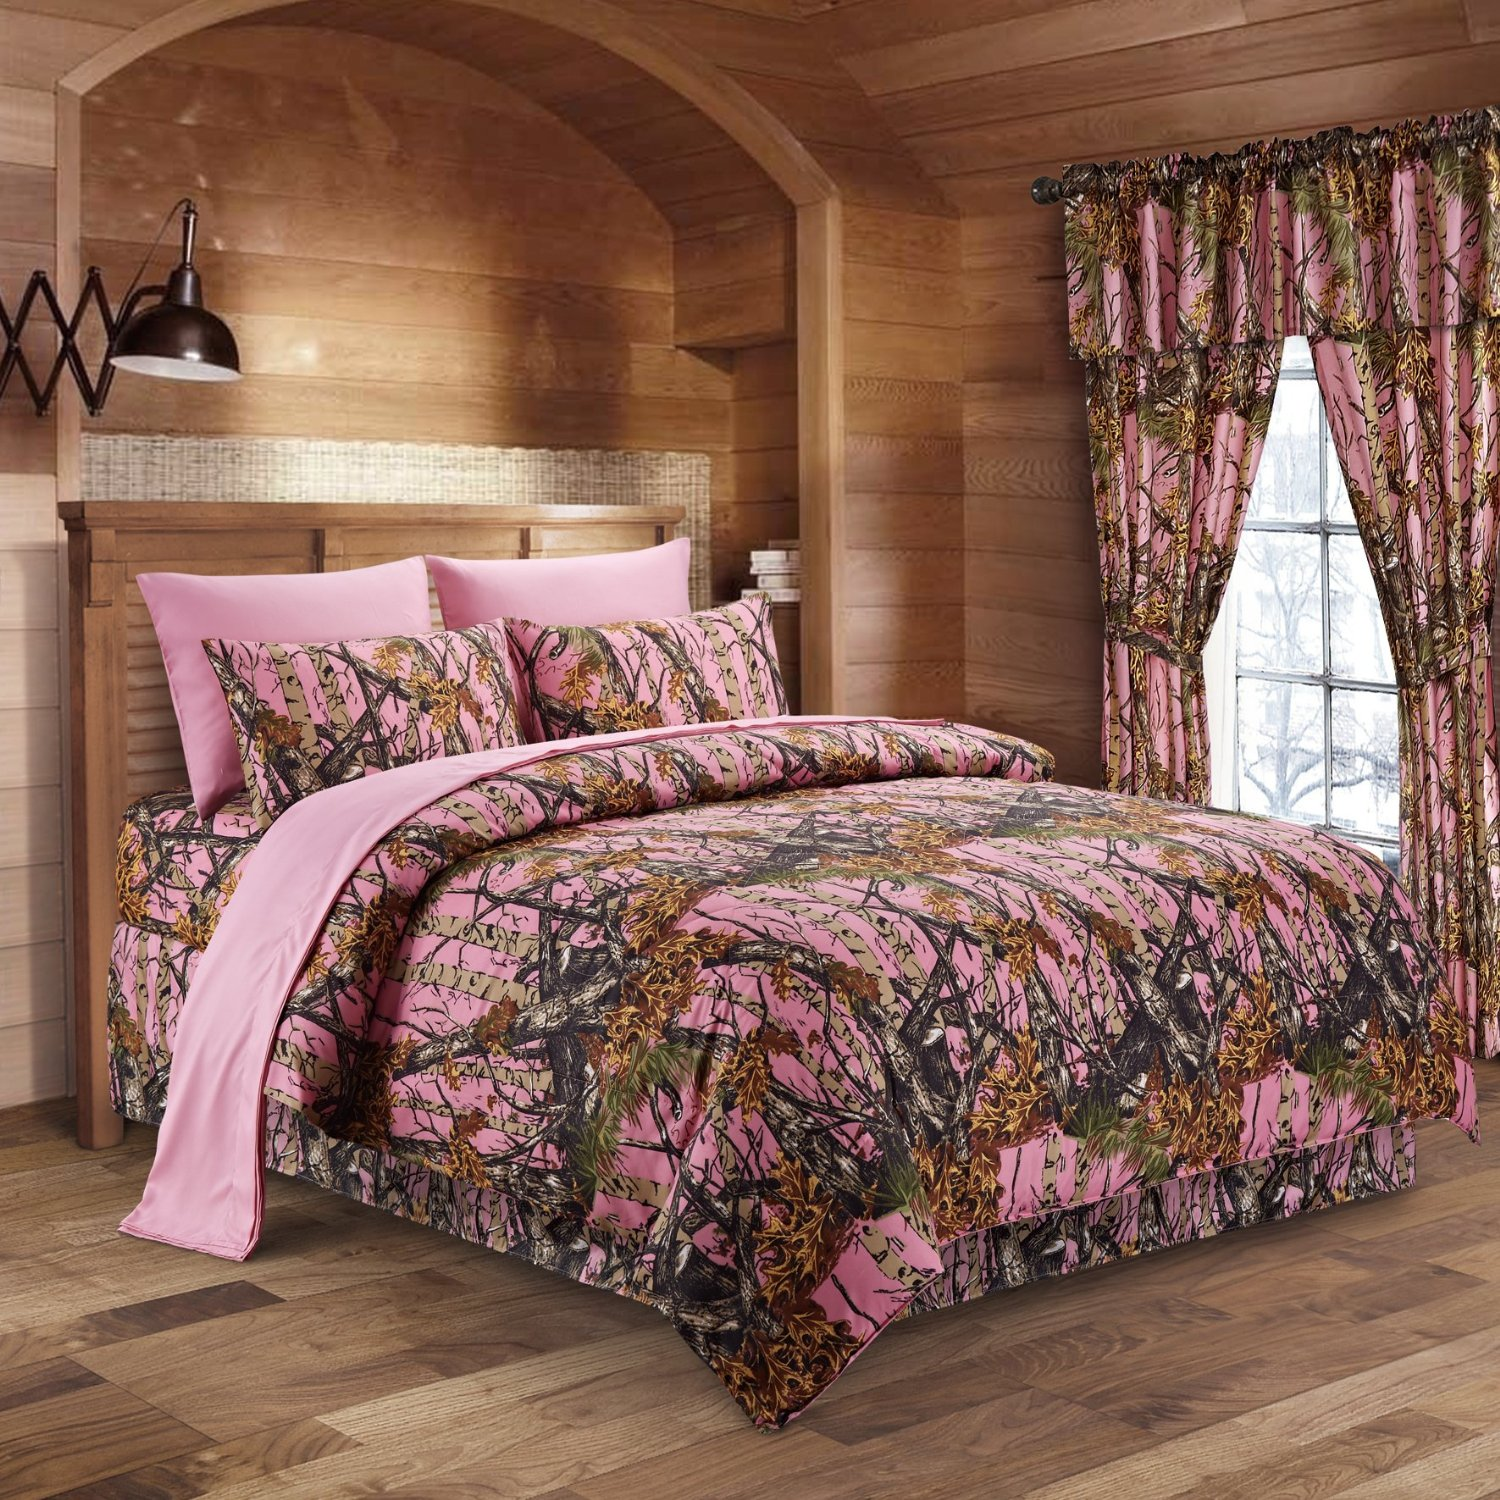 Regal Comfort 8pc Queen Size Woods Pink Camouflage Premium Comforter, Sheet, Pillowcases, and Bed Skirt Set Camo Bedding Set For Hunters Cabin or Rustic Lodge Teens Boys and Girls